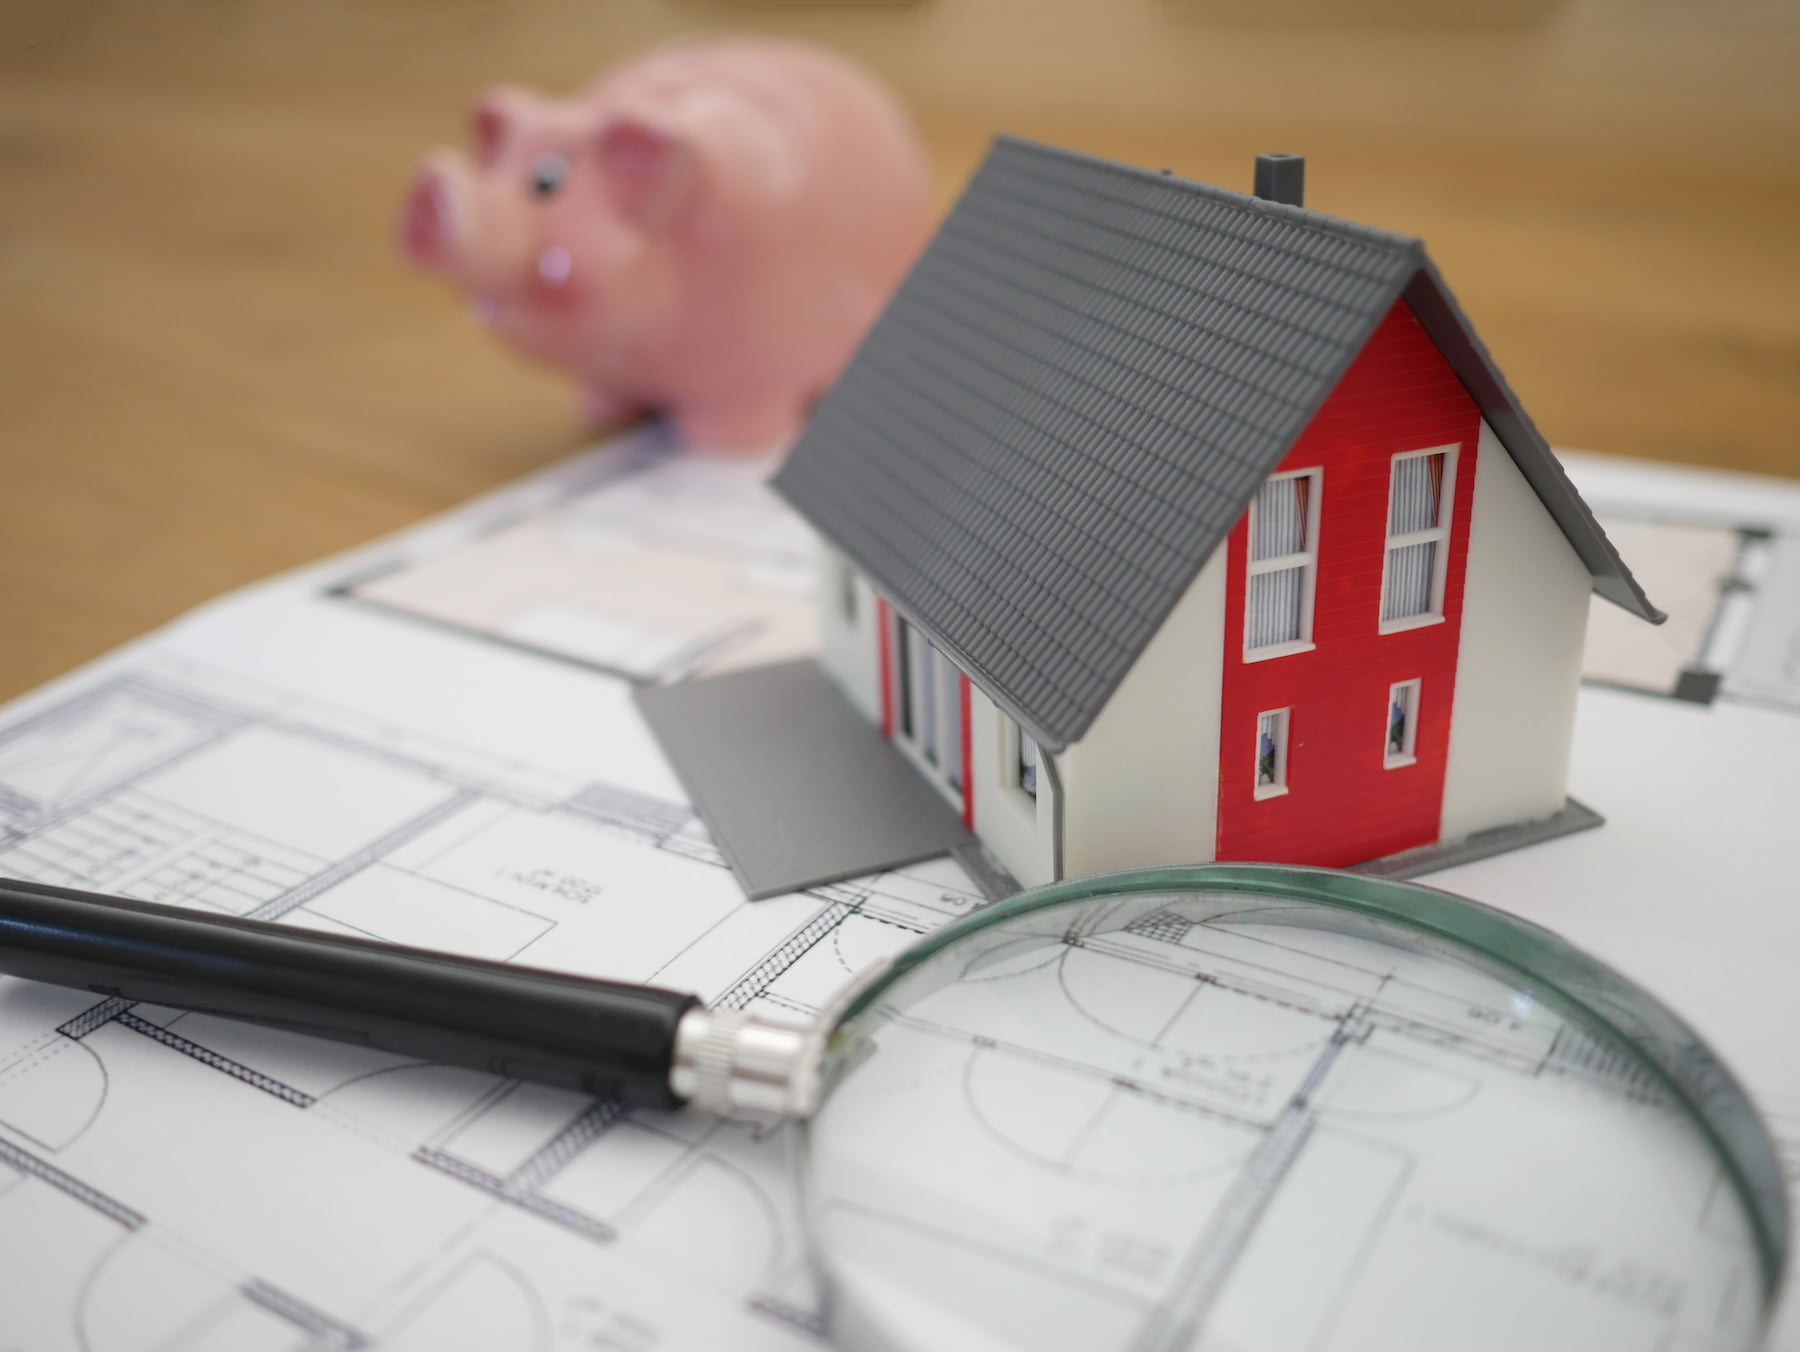 Model home and piggy bank on table